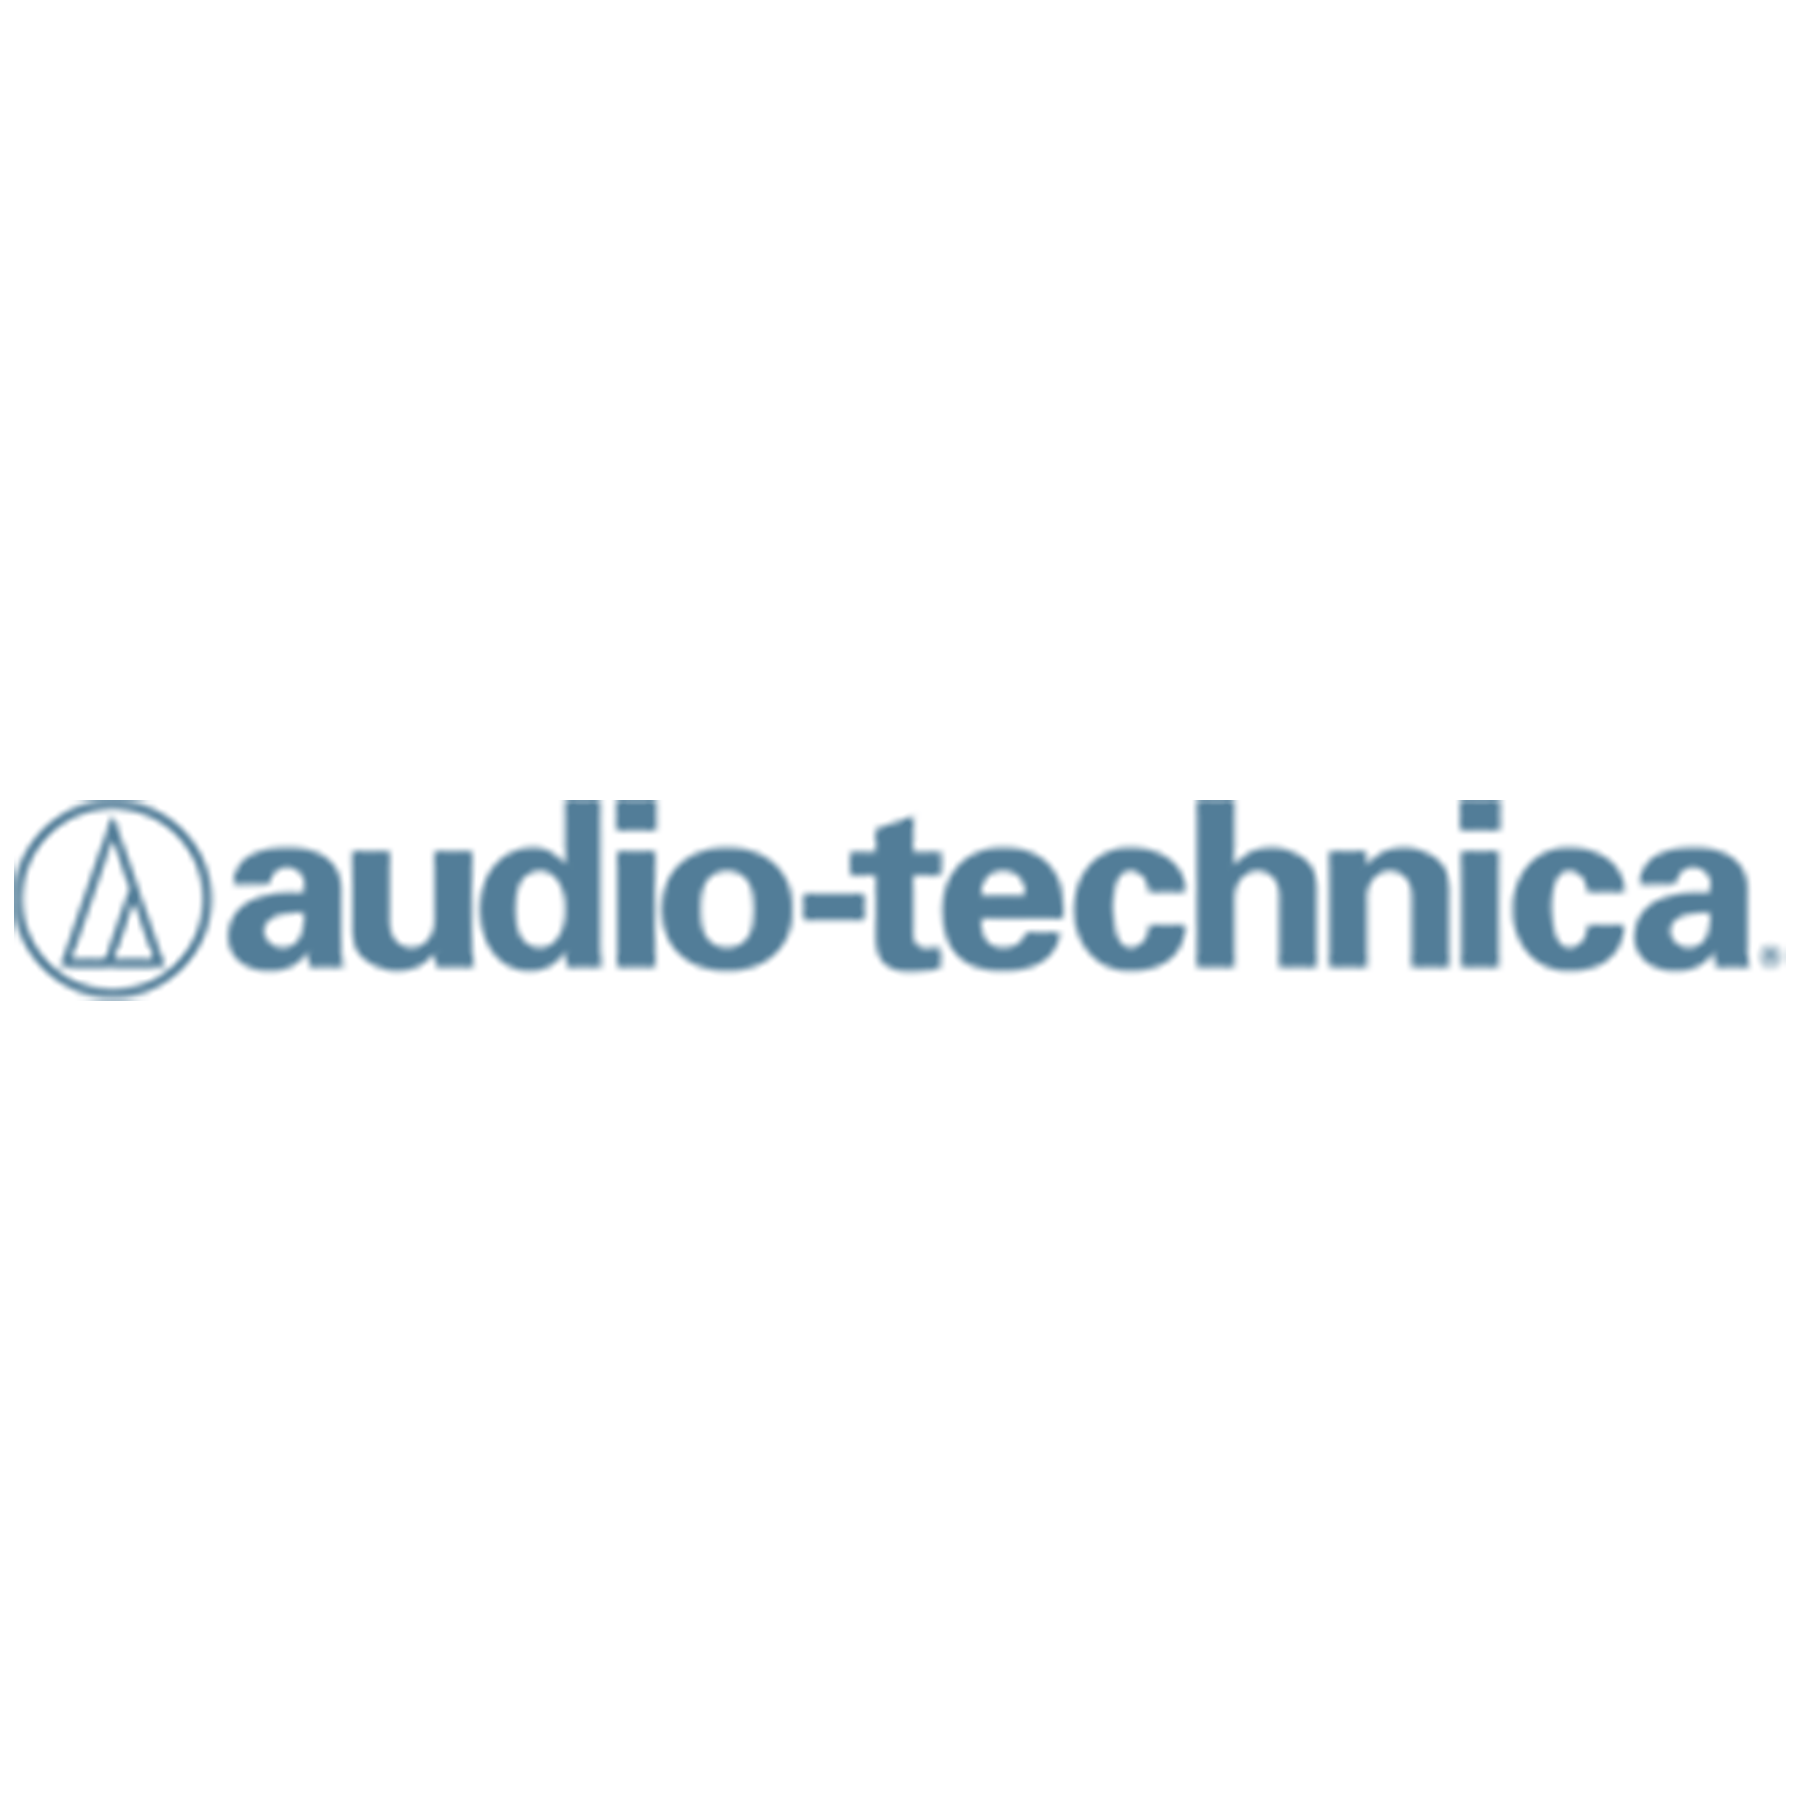 AUDIO TECHNICA LOGO.png